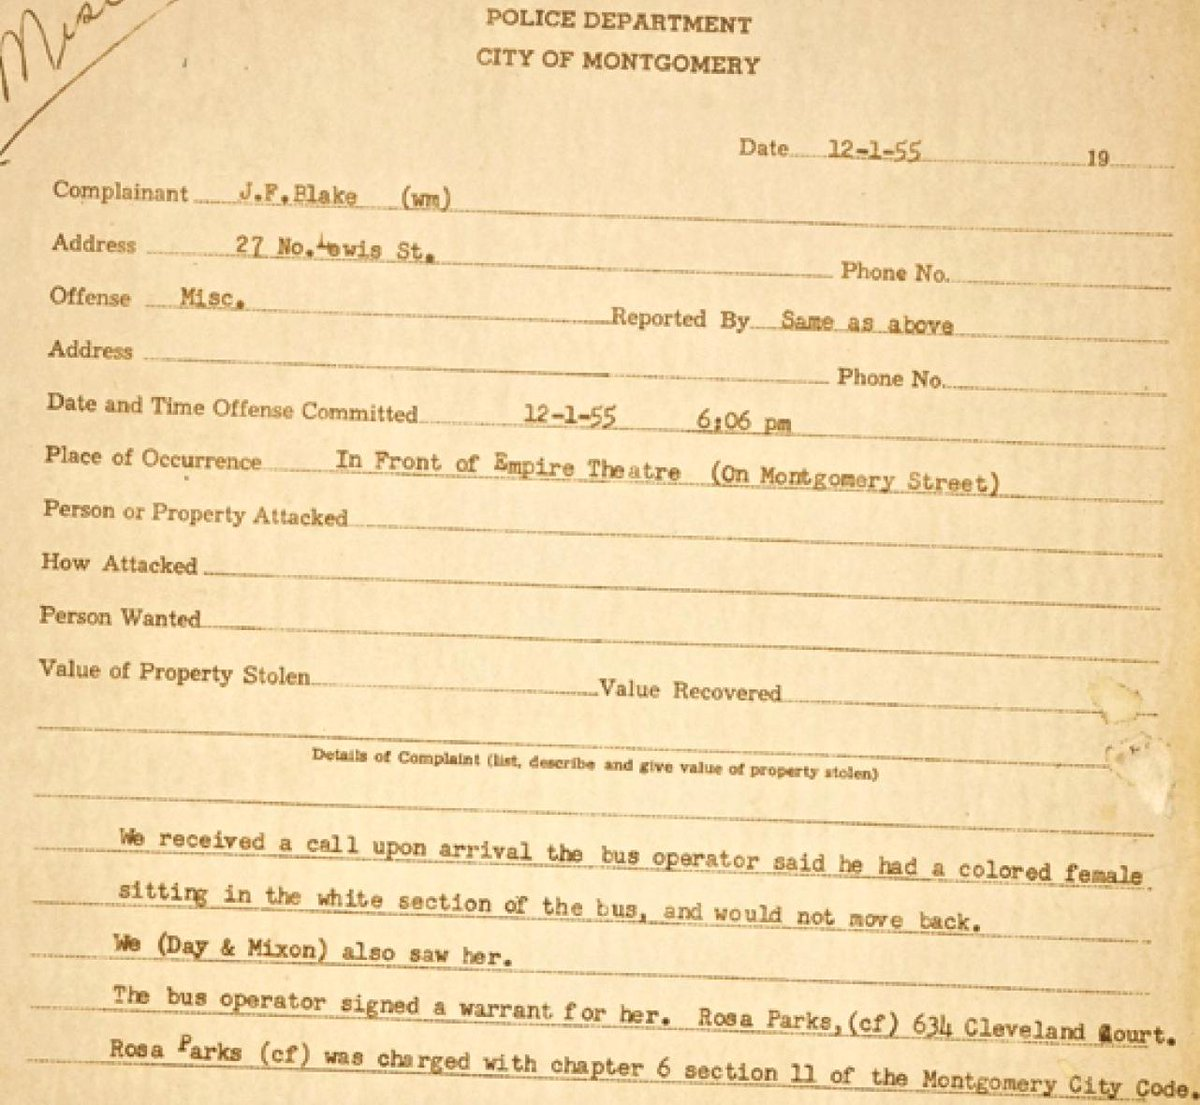 Police complaint against Rosa Parks, sixty-five years ago today: